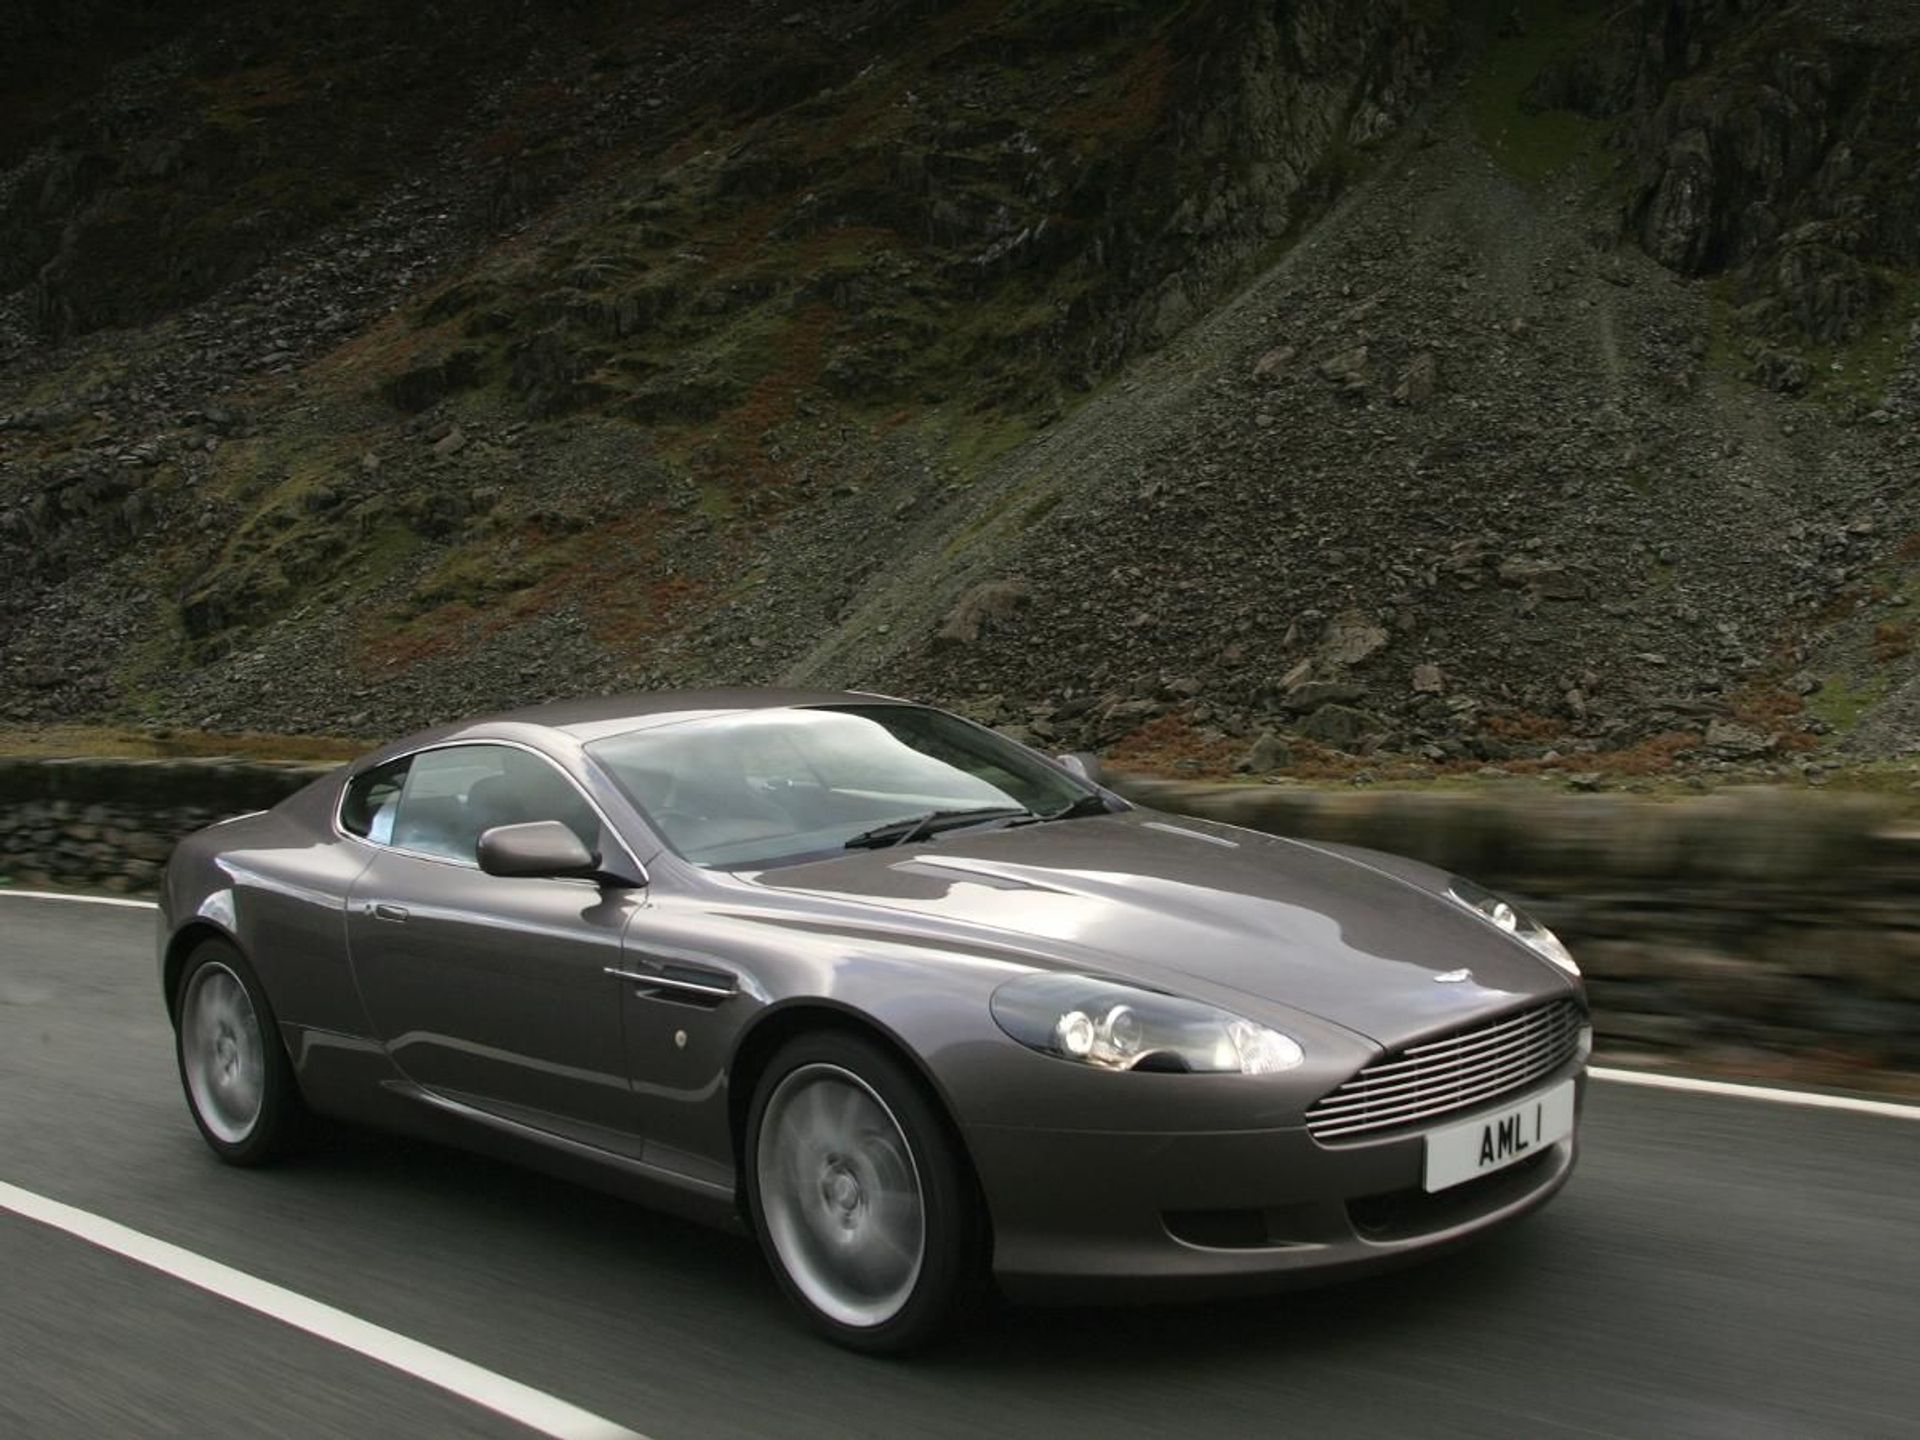 Aston Martin Db9 Classic Cars For Sale Autotrader Uk